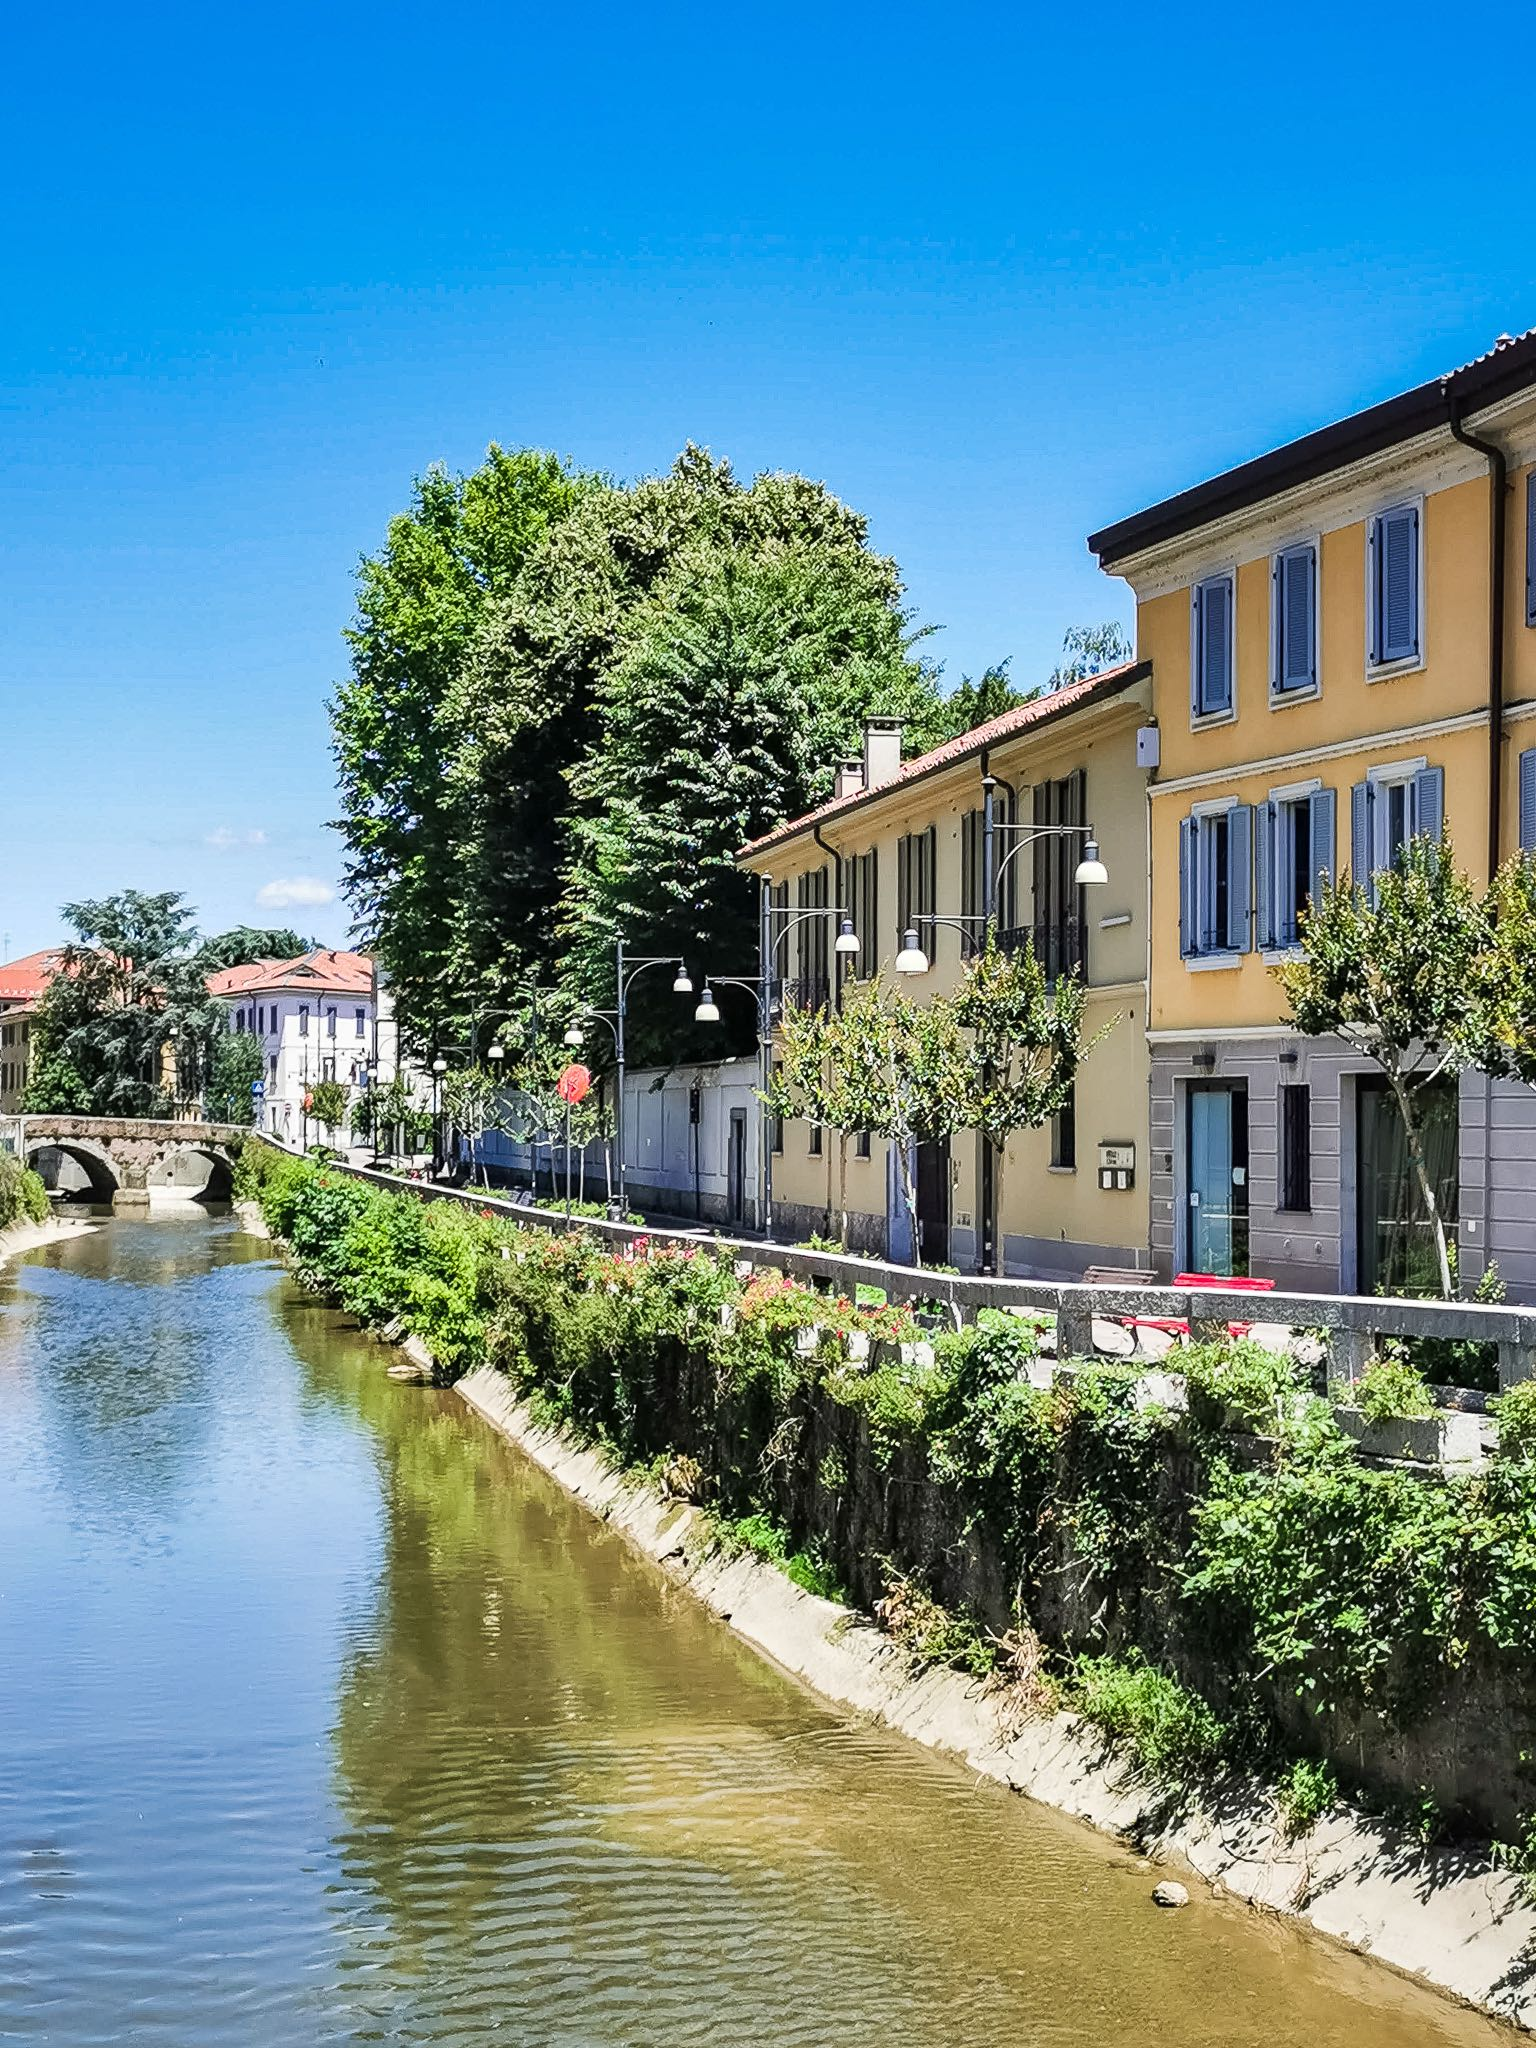 The quaint riverfront footpath in Monza historic center